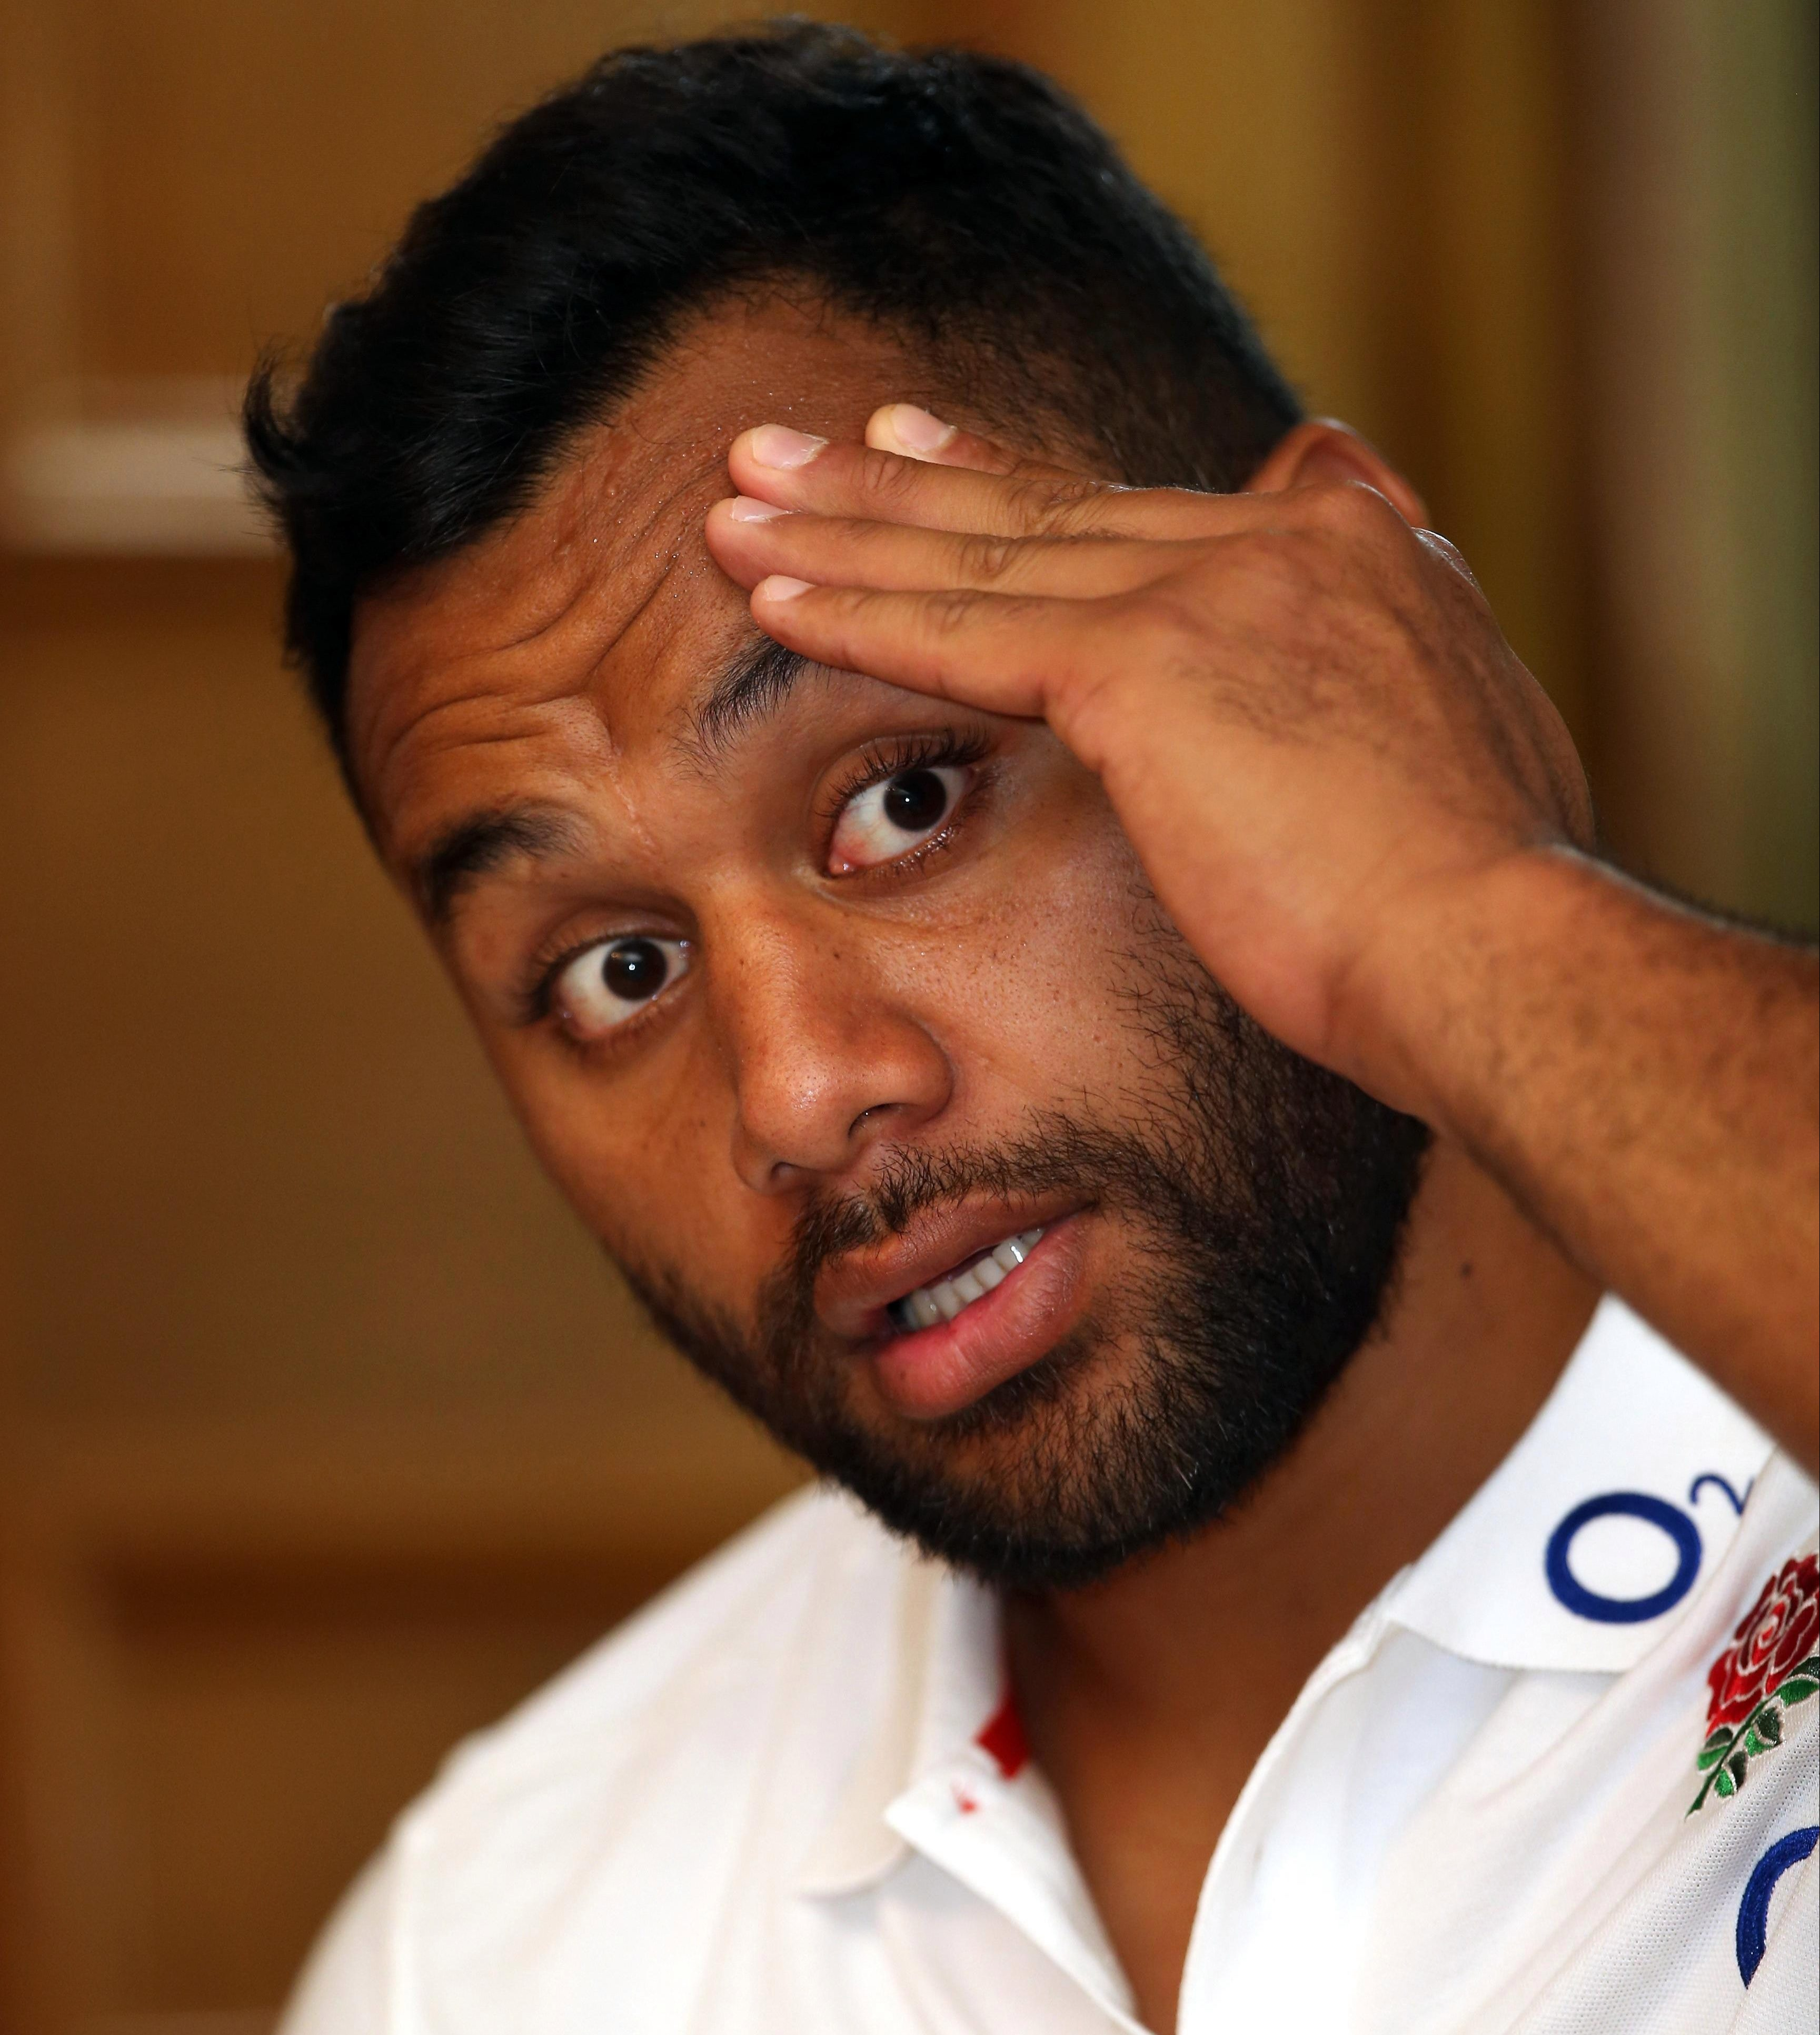 Billy Vunipola will be hoping to make an impact at No 8